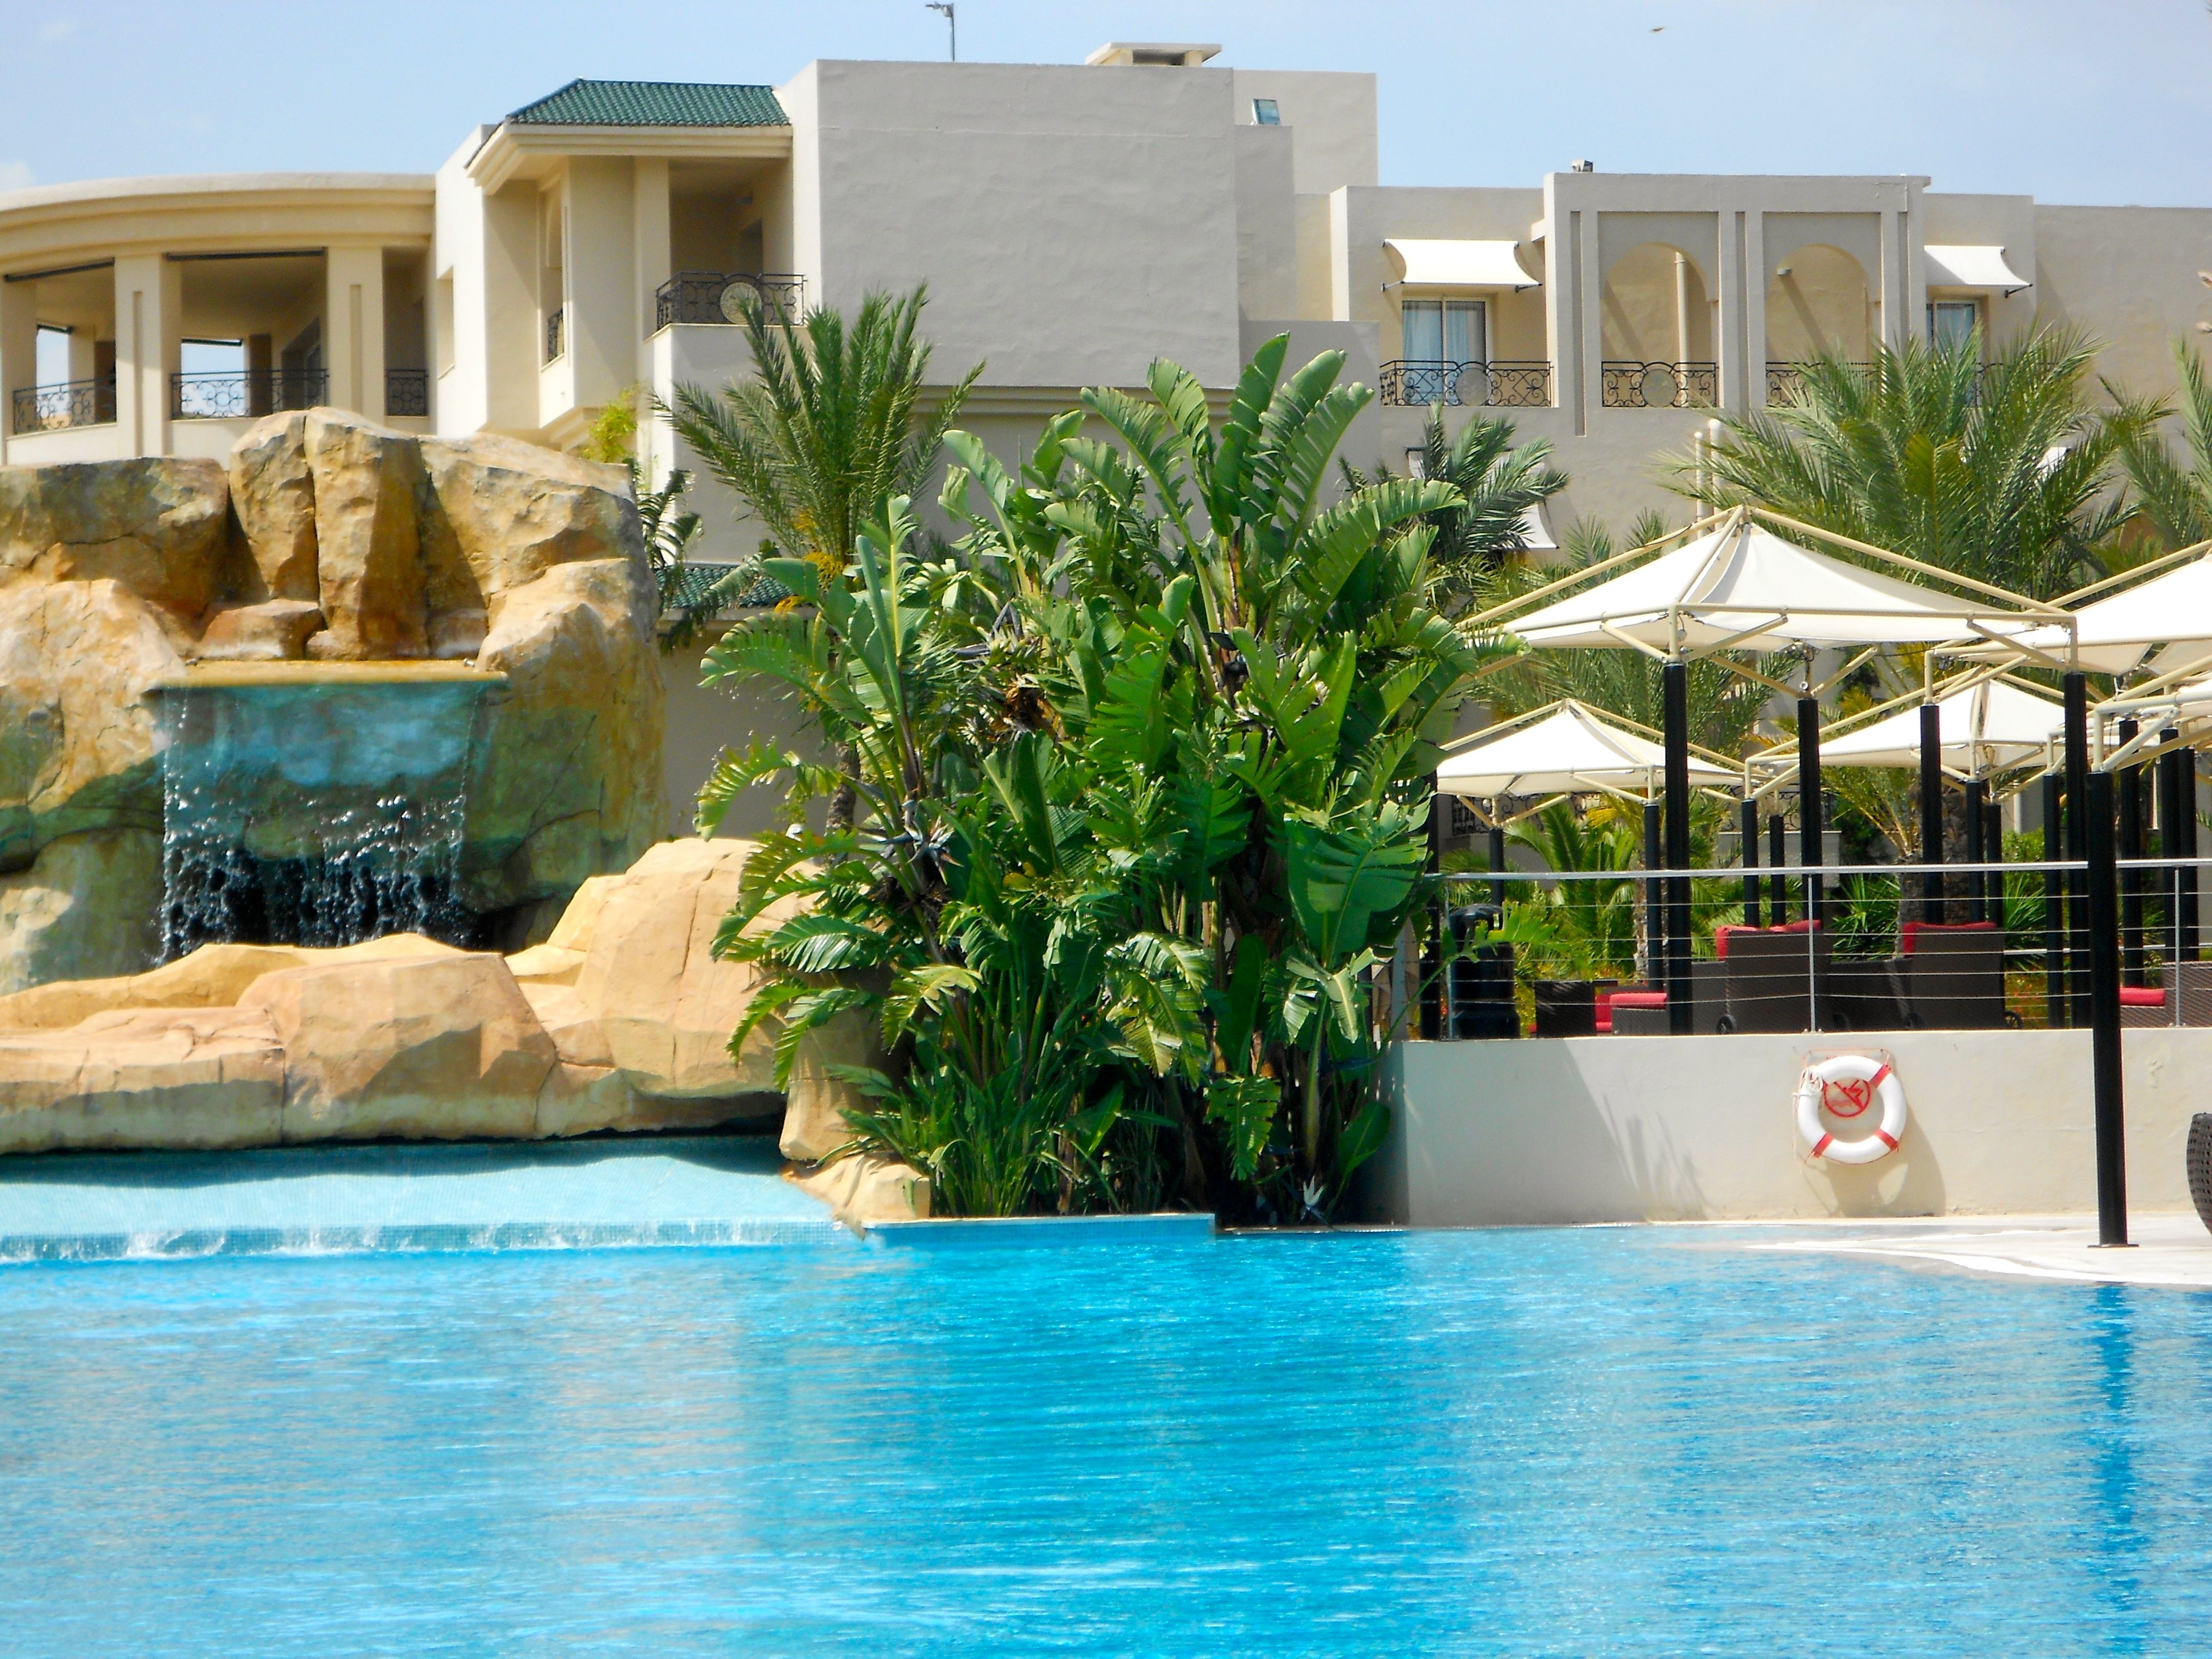 Here Are Pictures Of The Pool At The Russelior Hotel Spa In